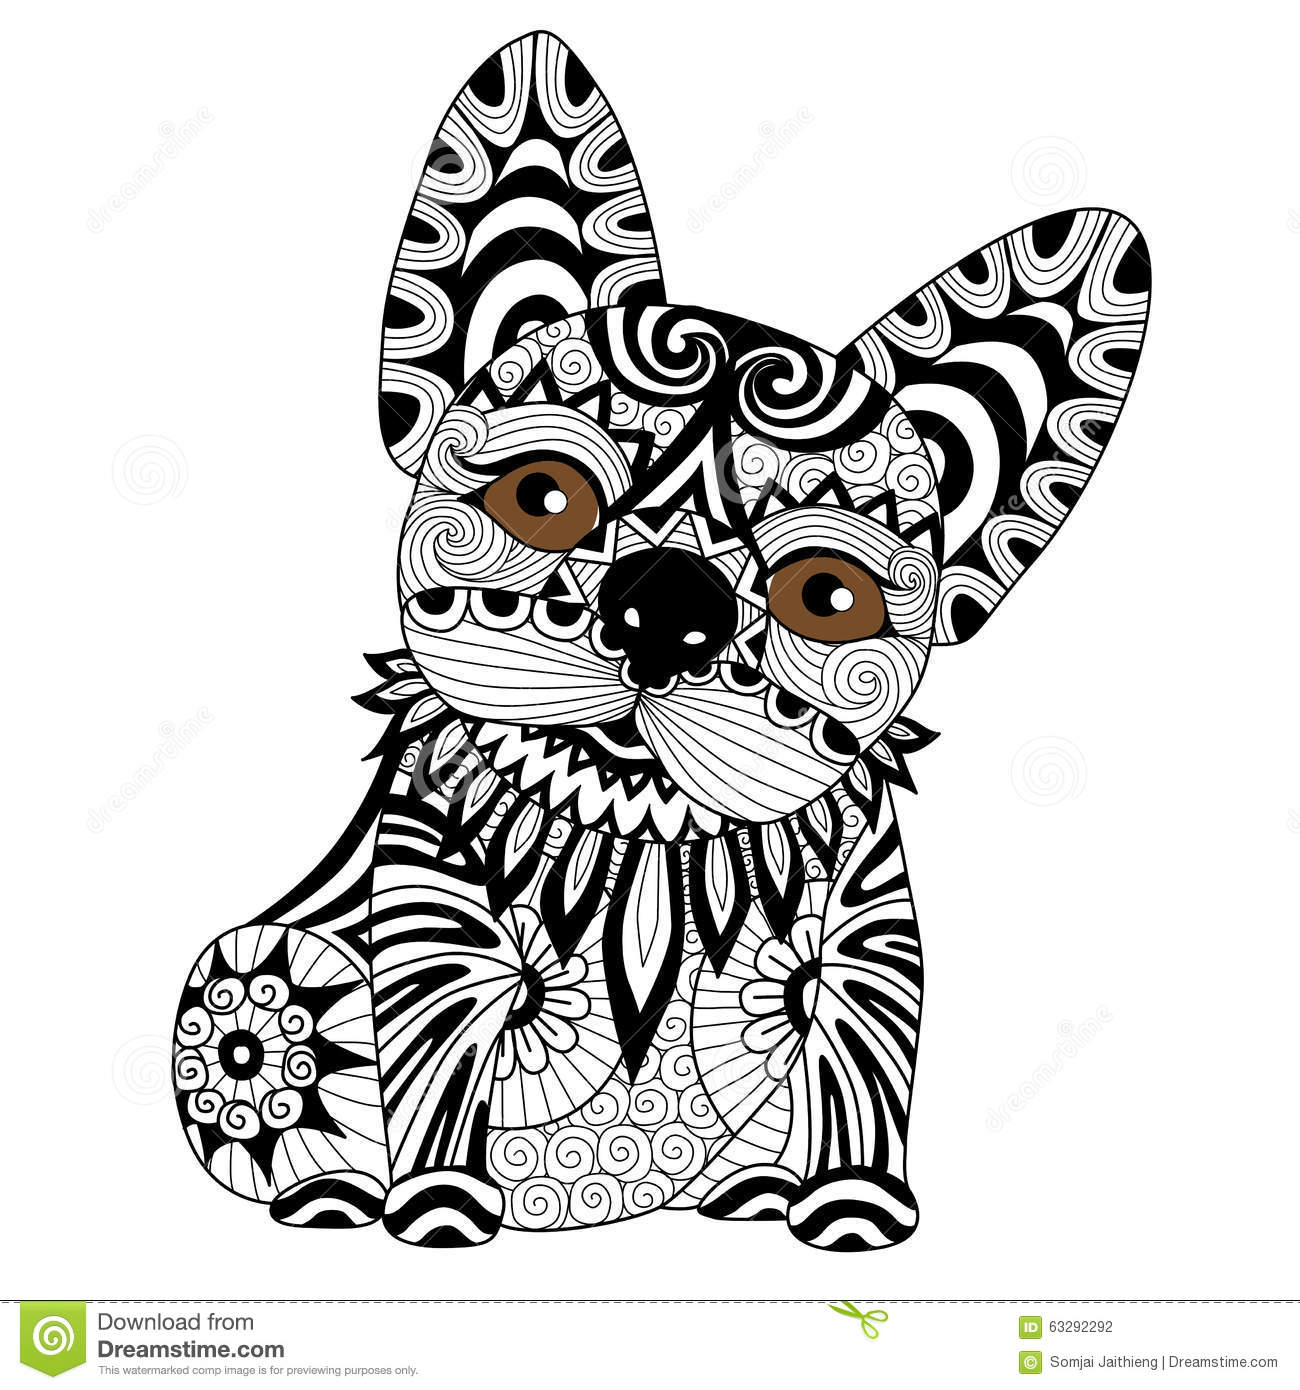 Hand Drawn Zentangle Bulldog Puppy For Coloring Page Stock